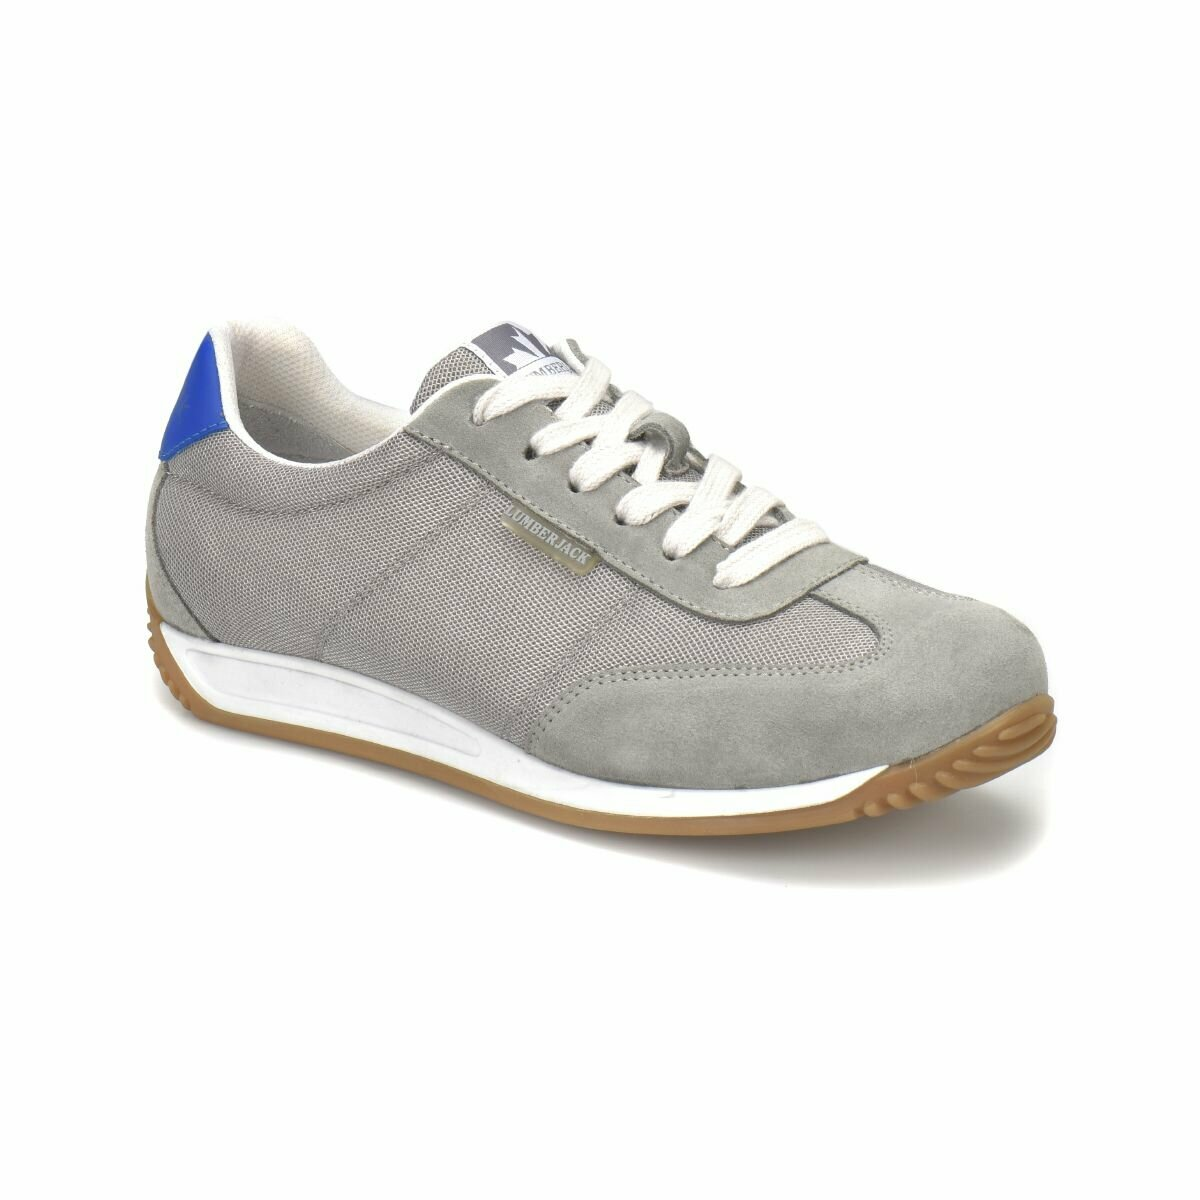 FLO NADAL Gray Men 'S Sneaker Shoes LUMBERJACK